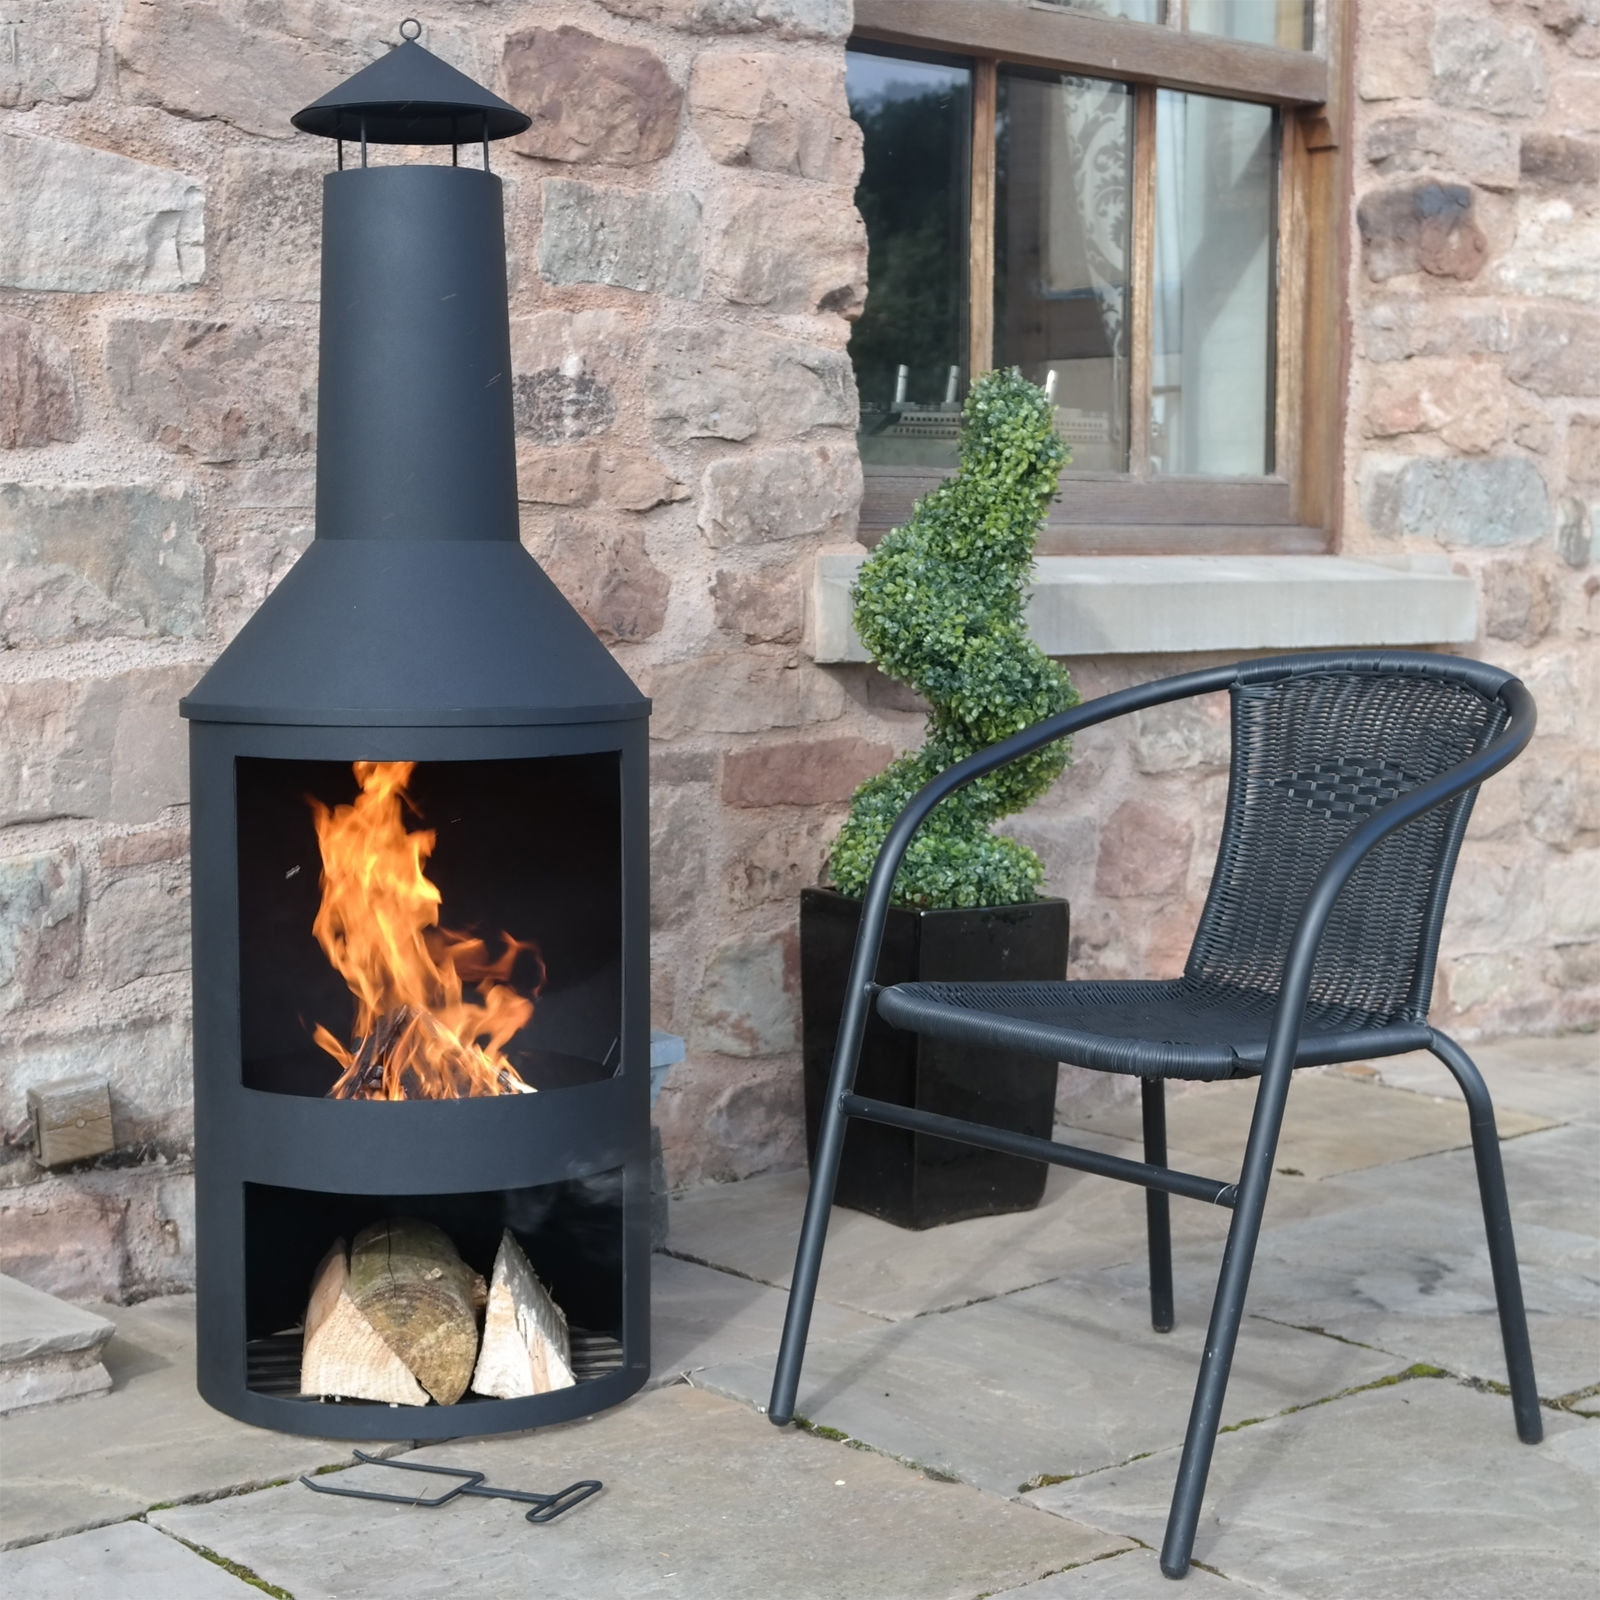 Fireplace Near Kitchen: Extra Large Clay Chiminea Outdoor Fireplace